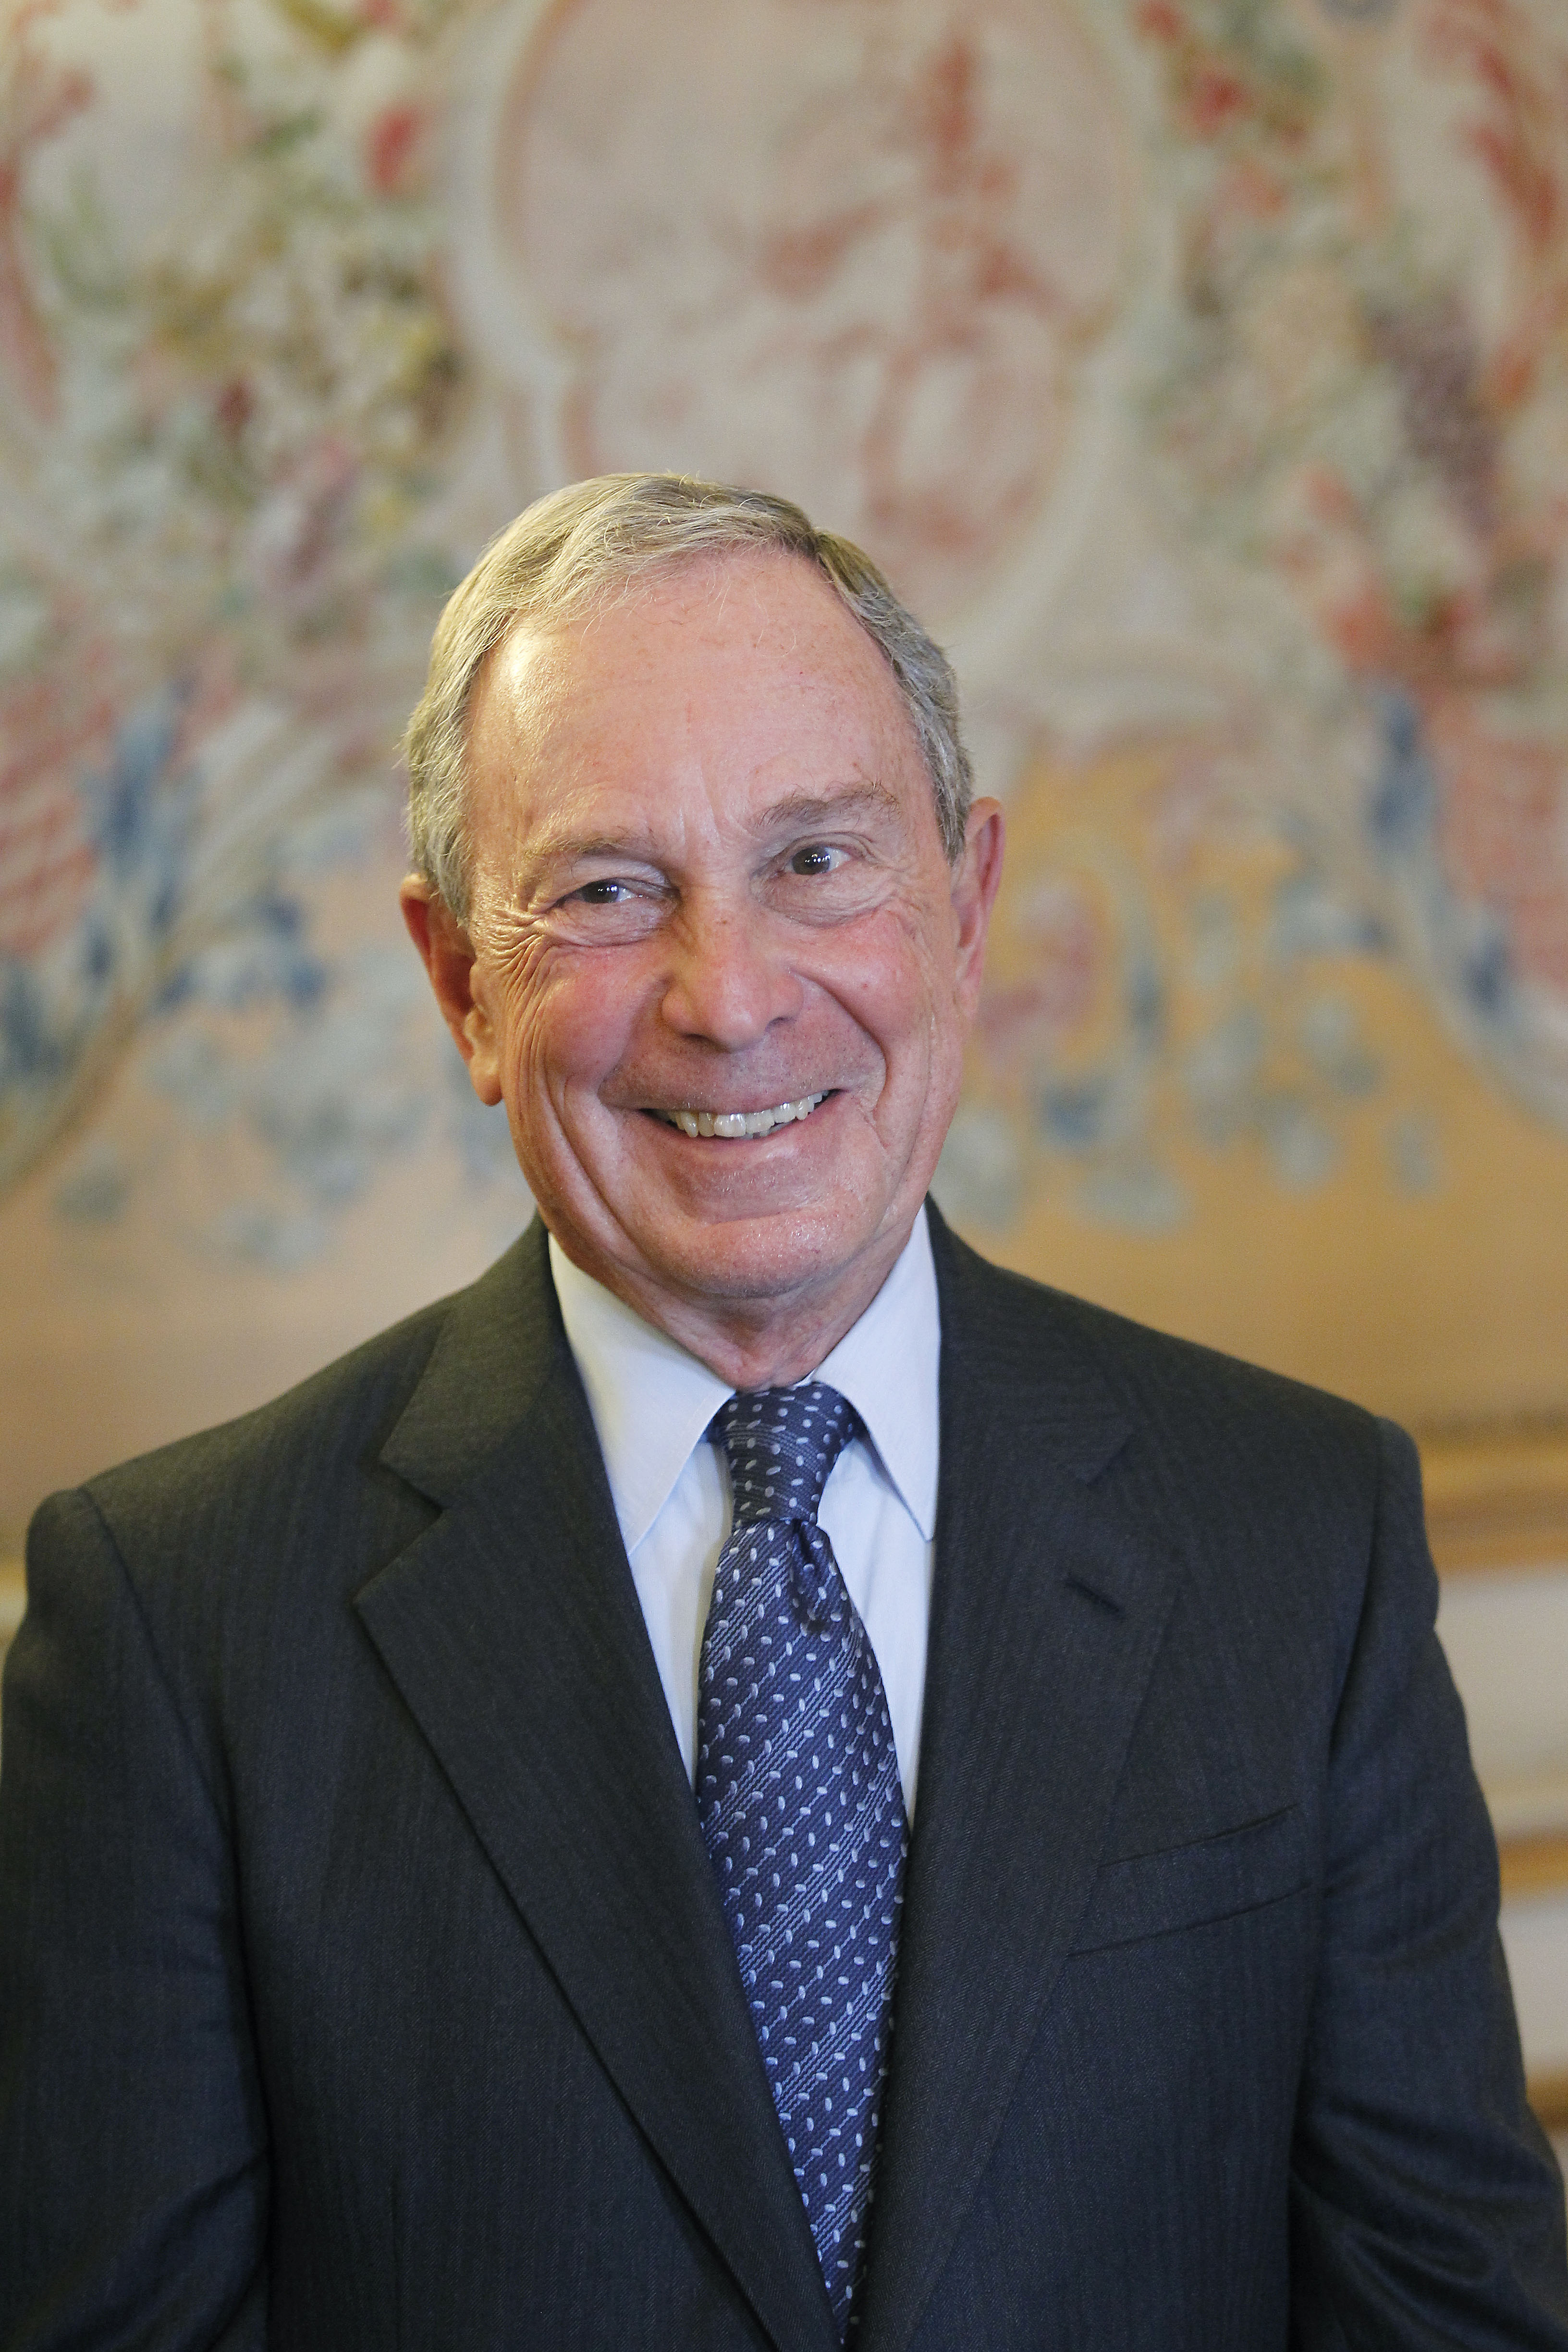 Former New York Mayor Michael Bloomberg poses prior to be awarded with the Legion d'Honneur by French Foreign Minister Laurent Fabius on Sept. 16, 2014 in Paris.